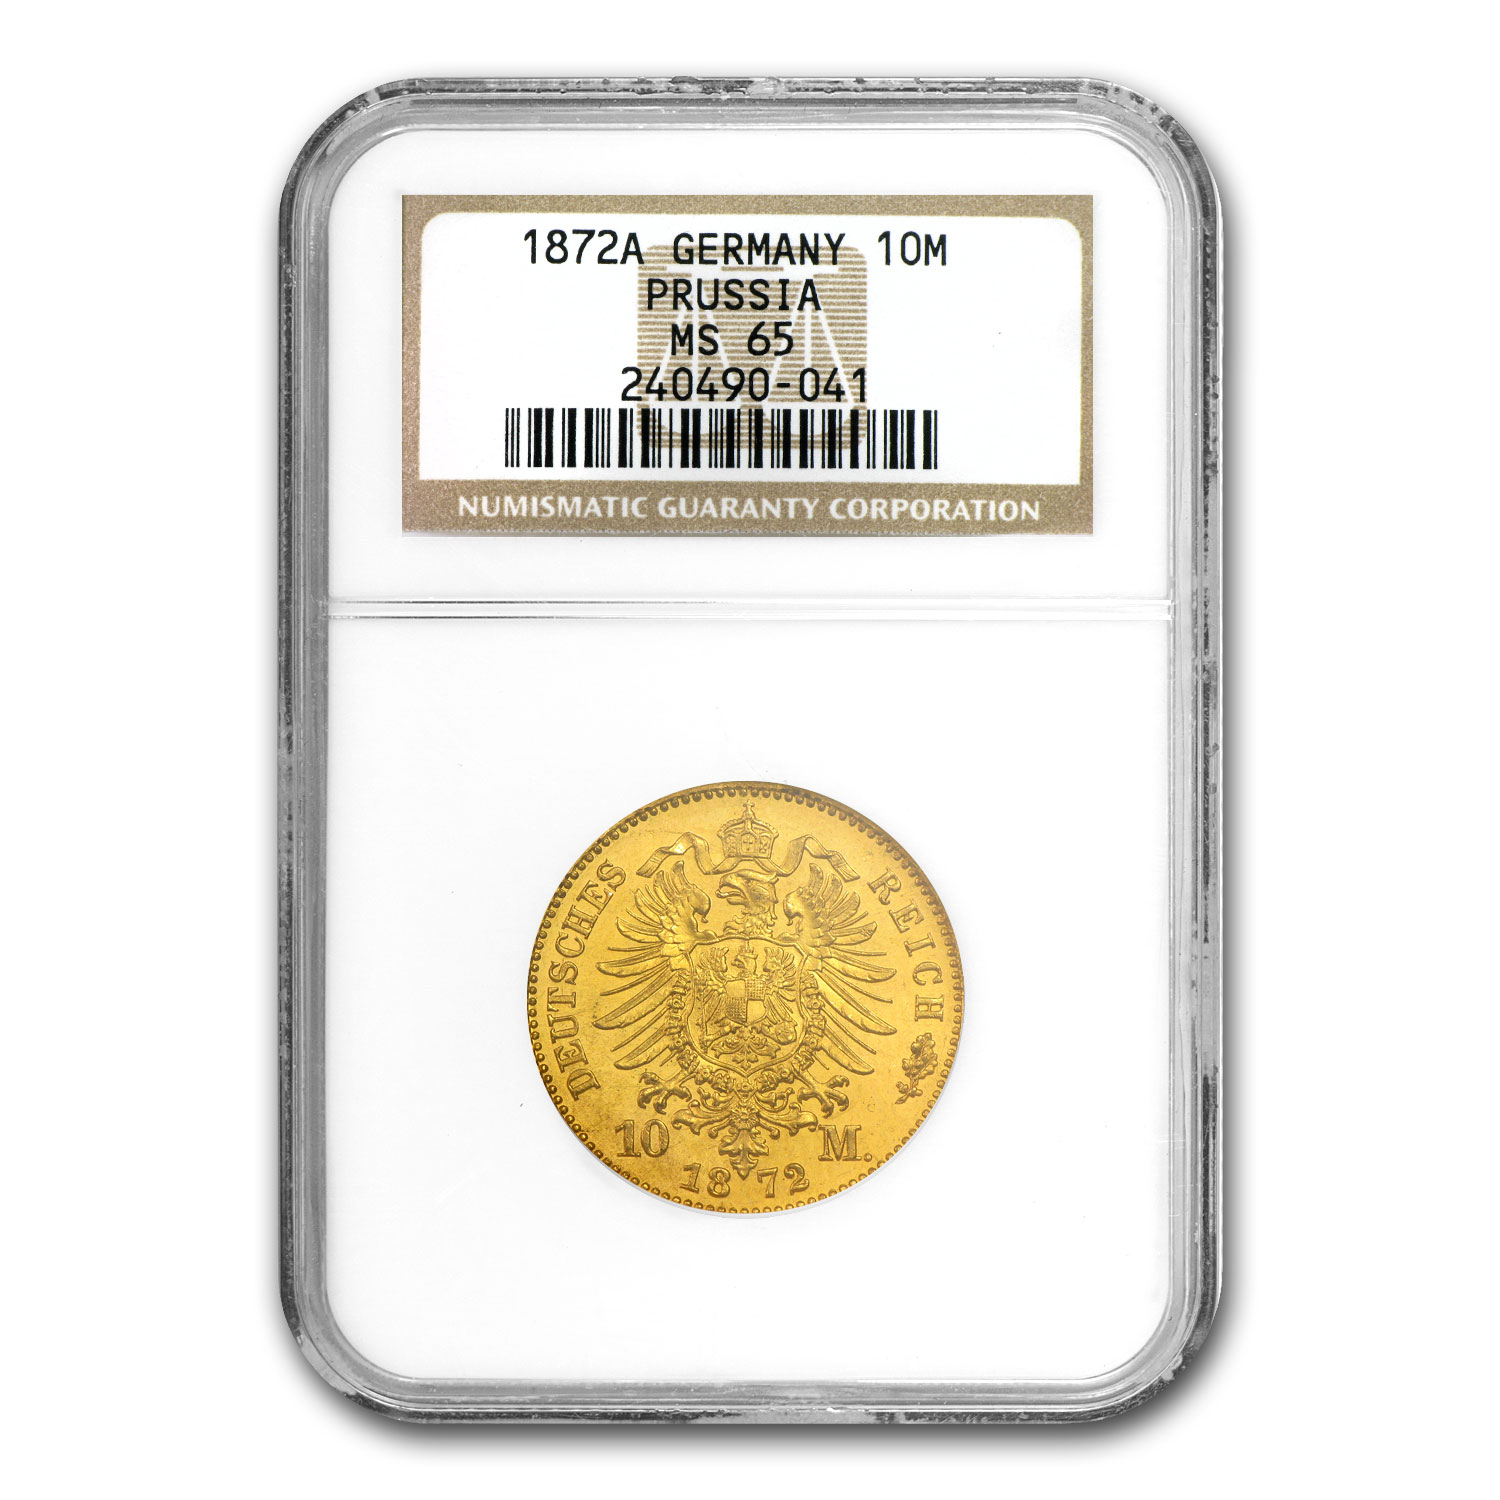 Germany 1872-1873 Gold 10 Marks Prussia MS-65 NGC